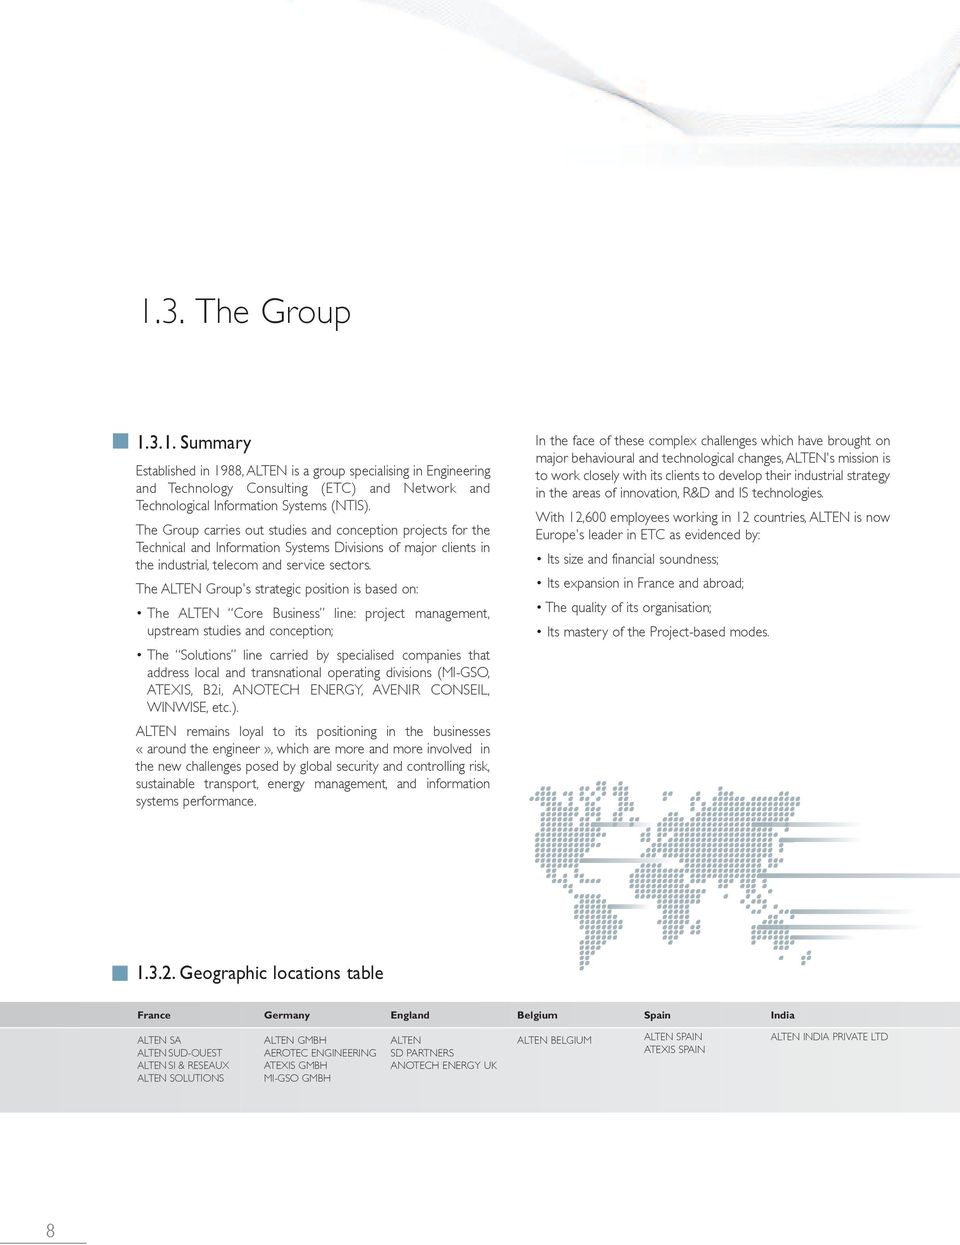 The ALTEN Group's strategic position is based on: The ALTEN Core Business line: project management, upstream studies and conception; The Solutions line carried by specialised companies that address